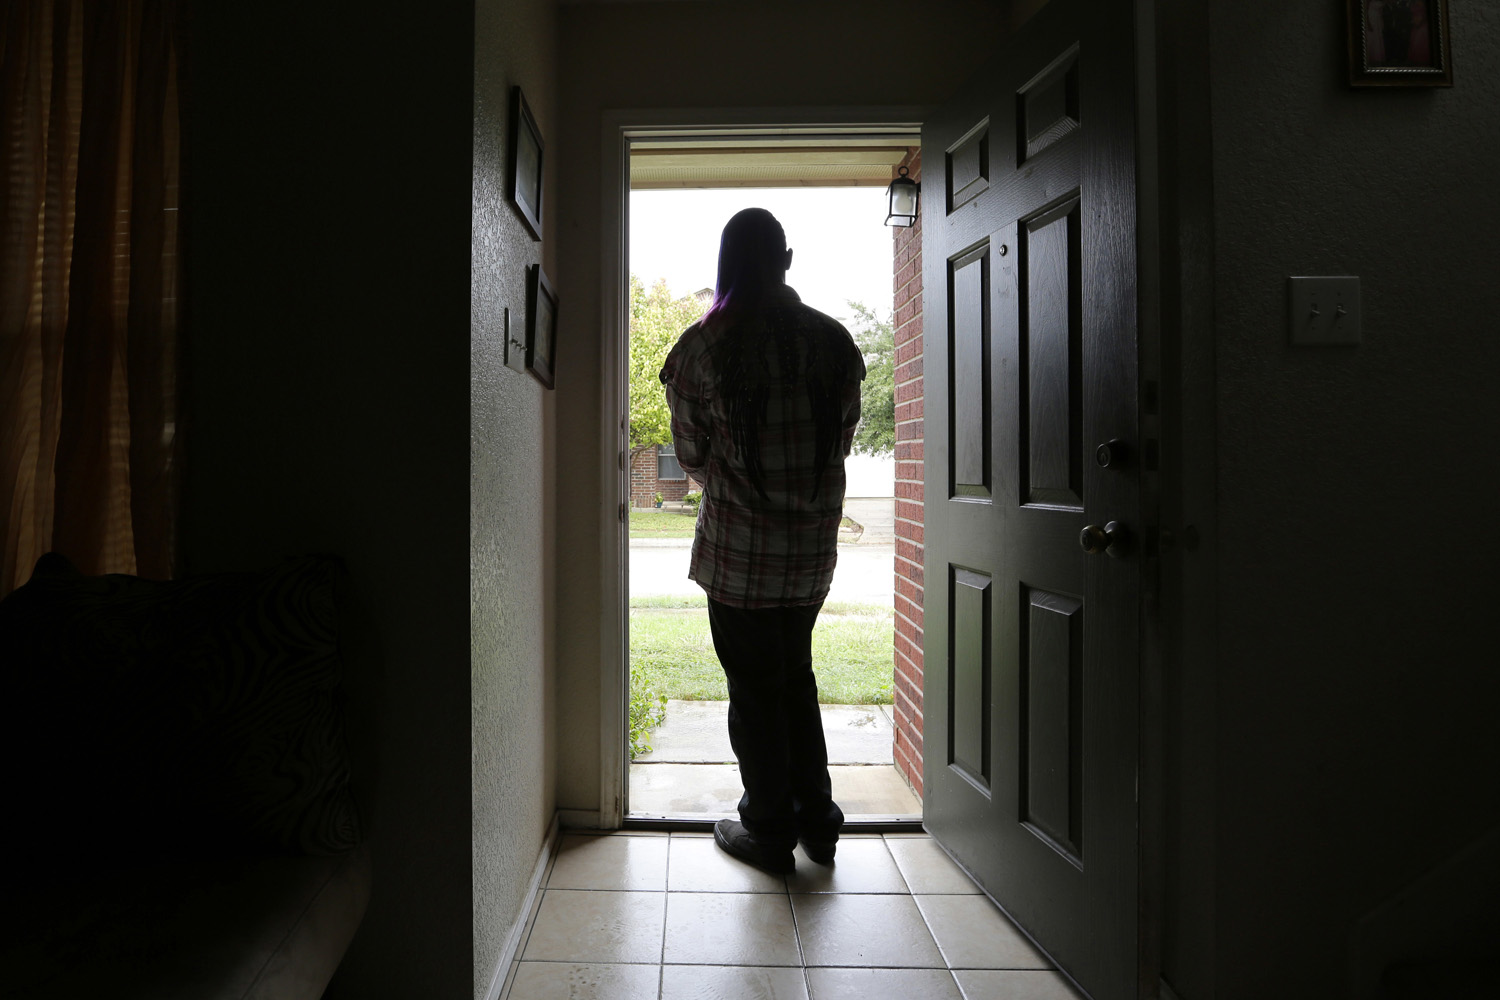 In this Monday, Dec. 5, 2016 file photo, a 19-year-old transgender teen, who declined to be identified because she feared for her life after receiving death threats earlier in the year at a halfway house, poses for a photo in Texas. (Eric Gay/AP)